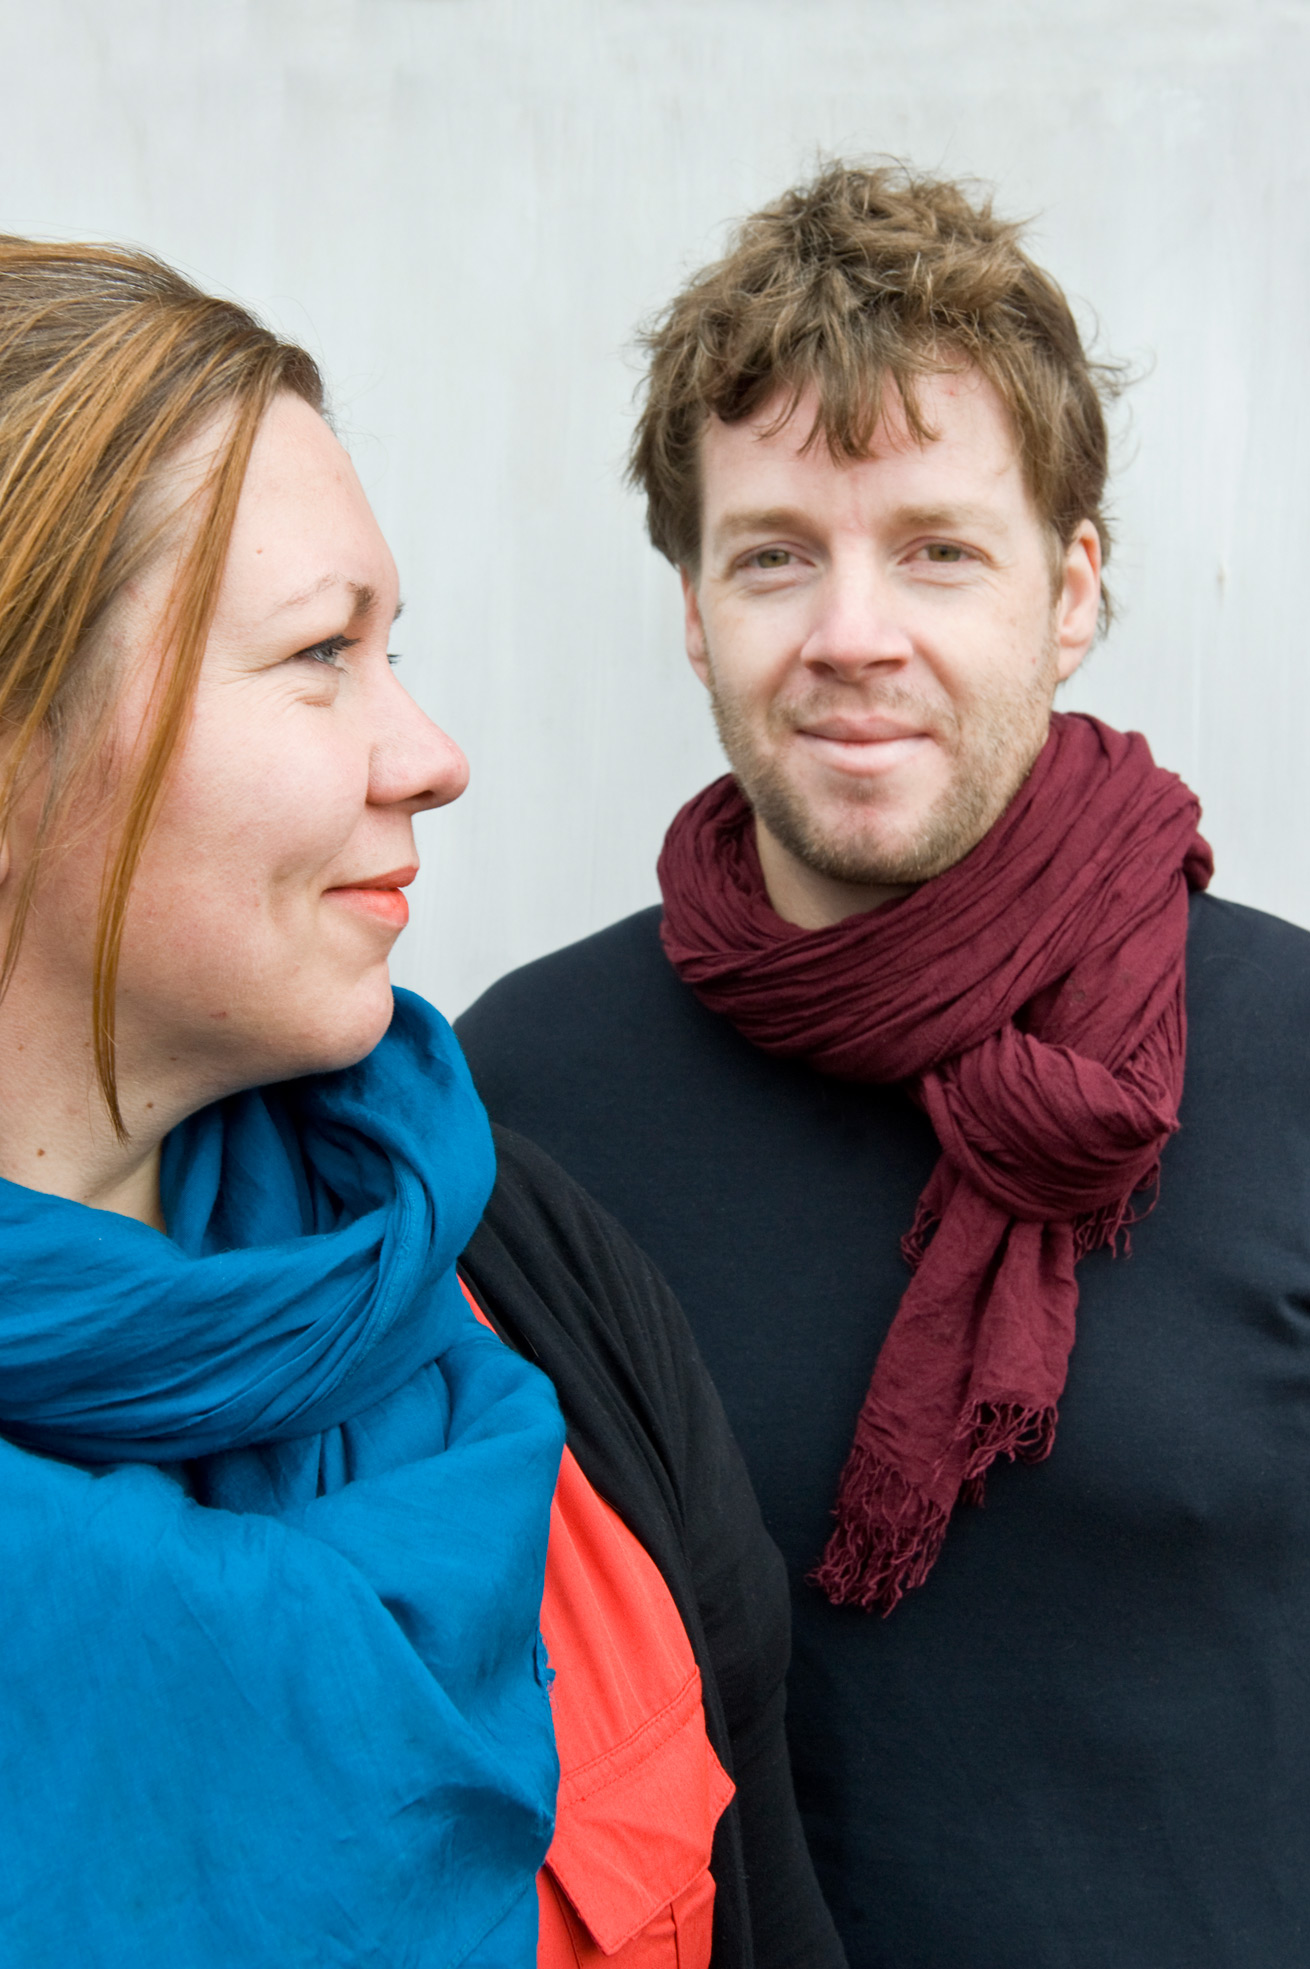 Judith van den Boom and Gunter Wehmeyer